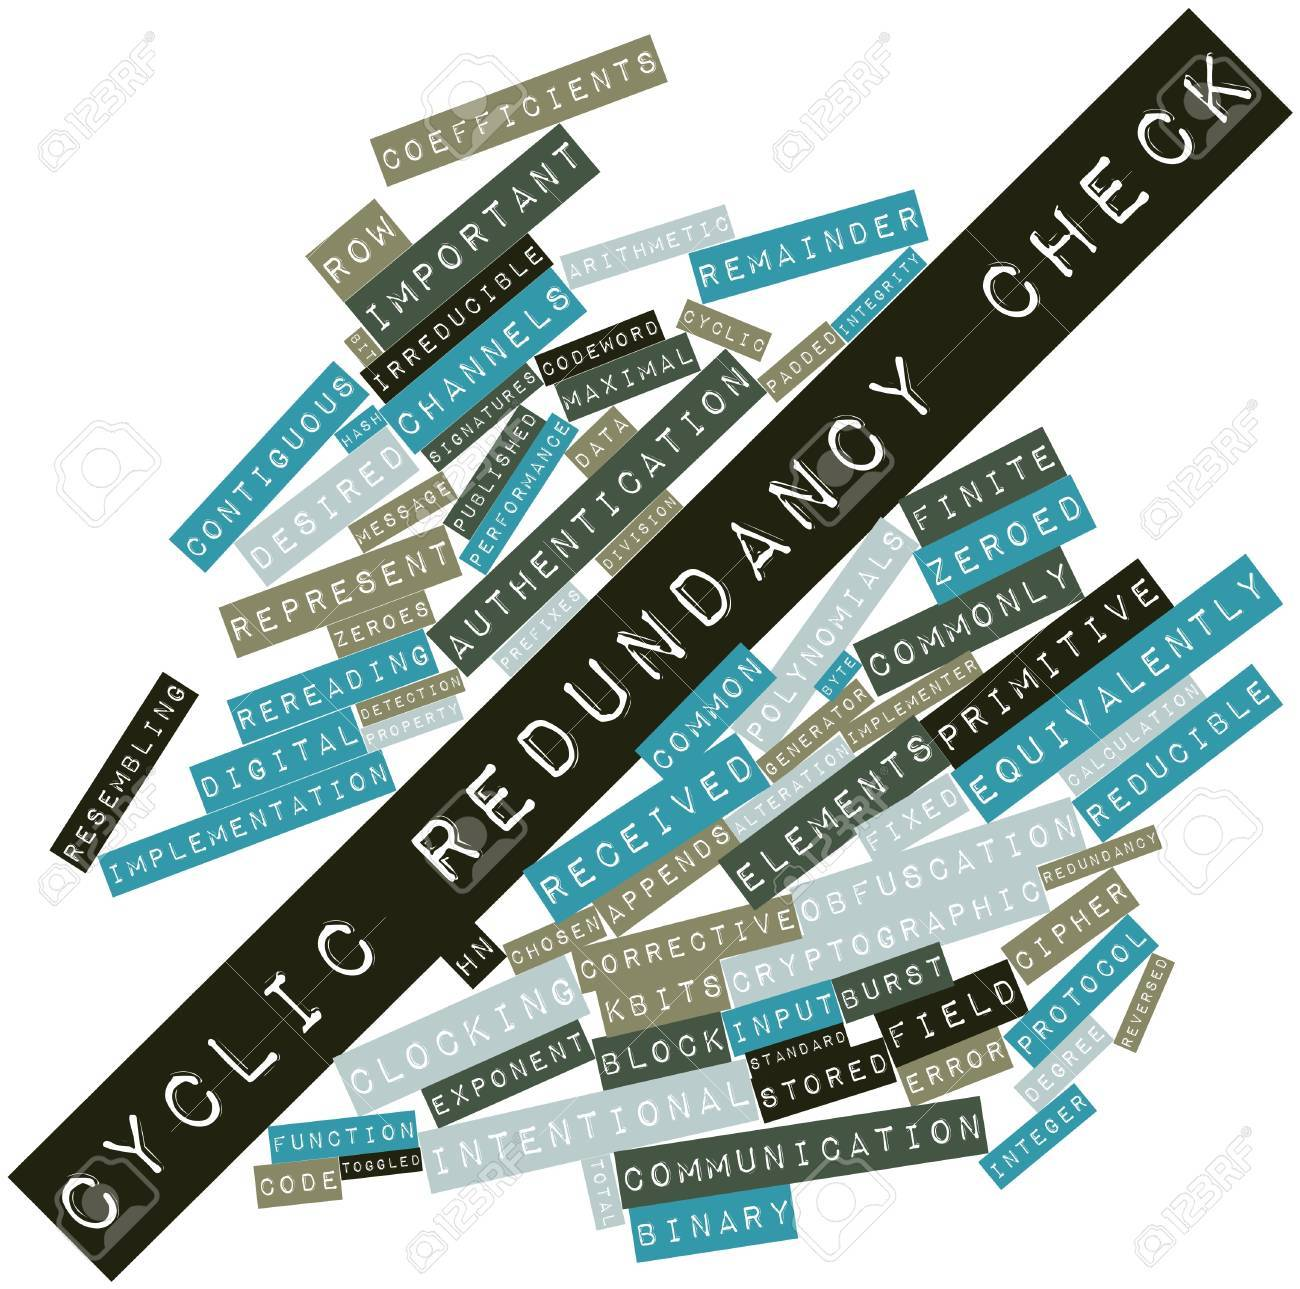 Abstract word cloud for Cyclic redundancy check with related